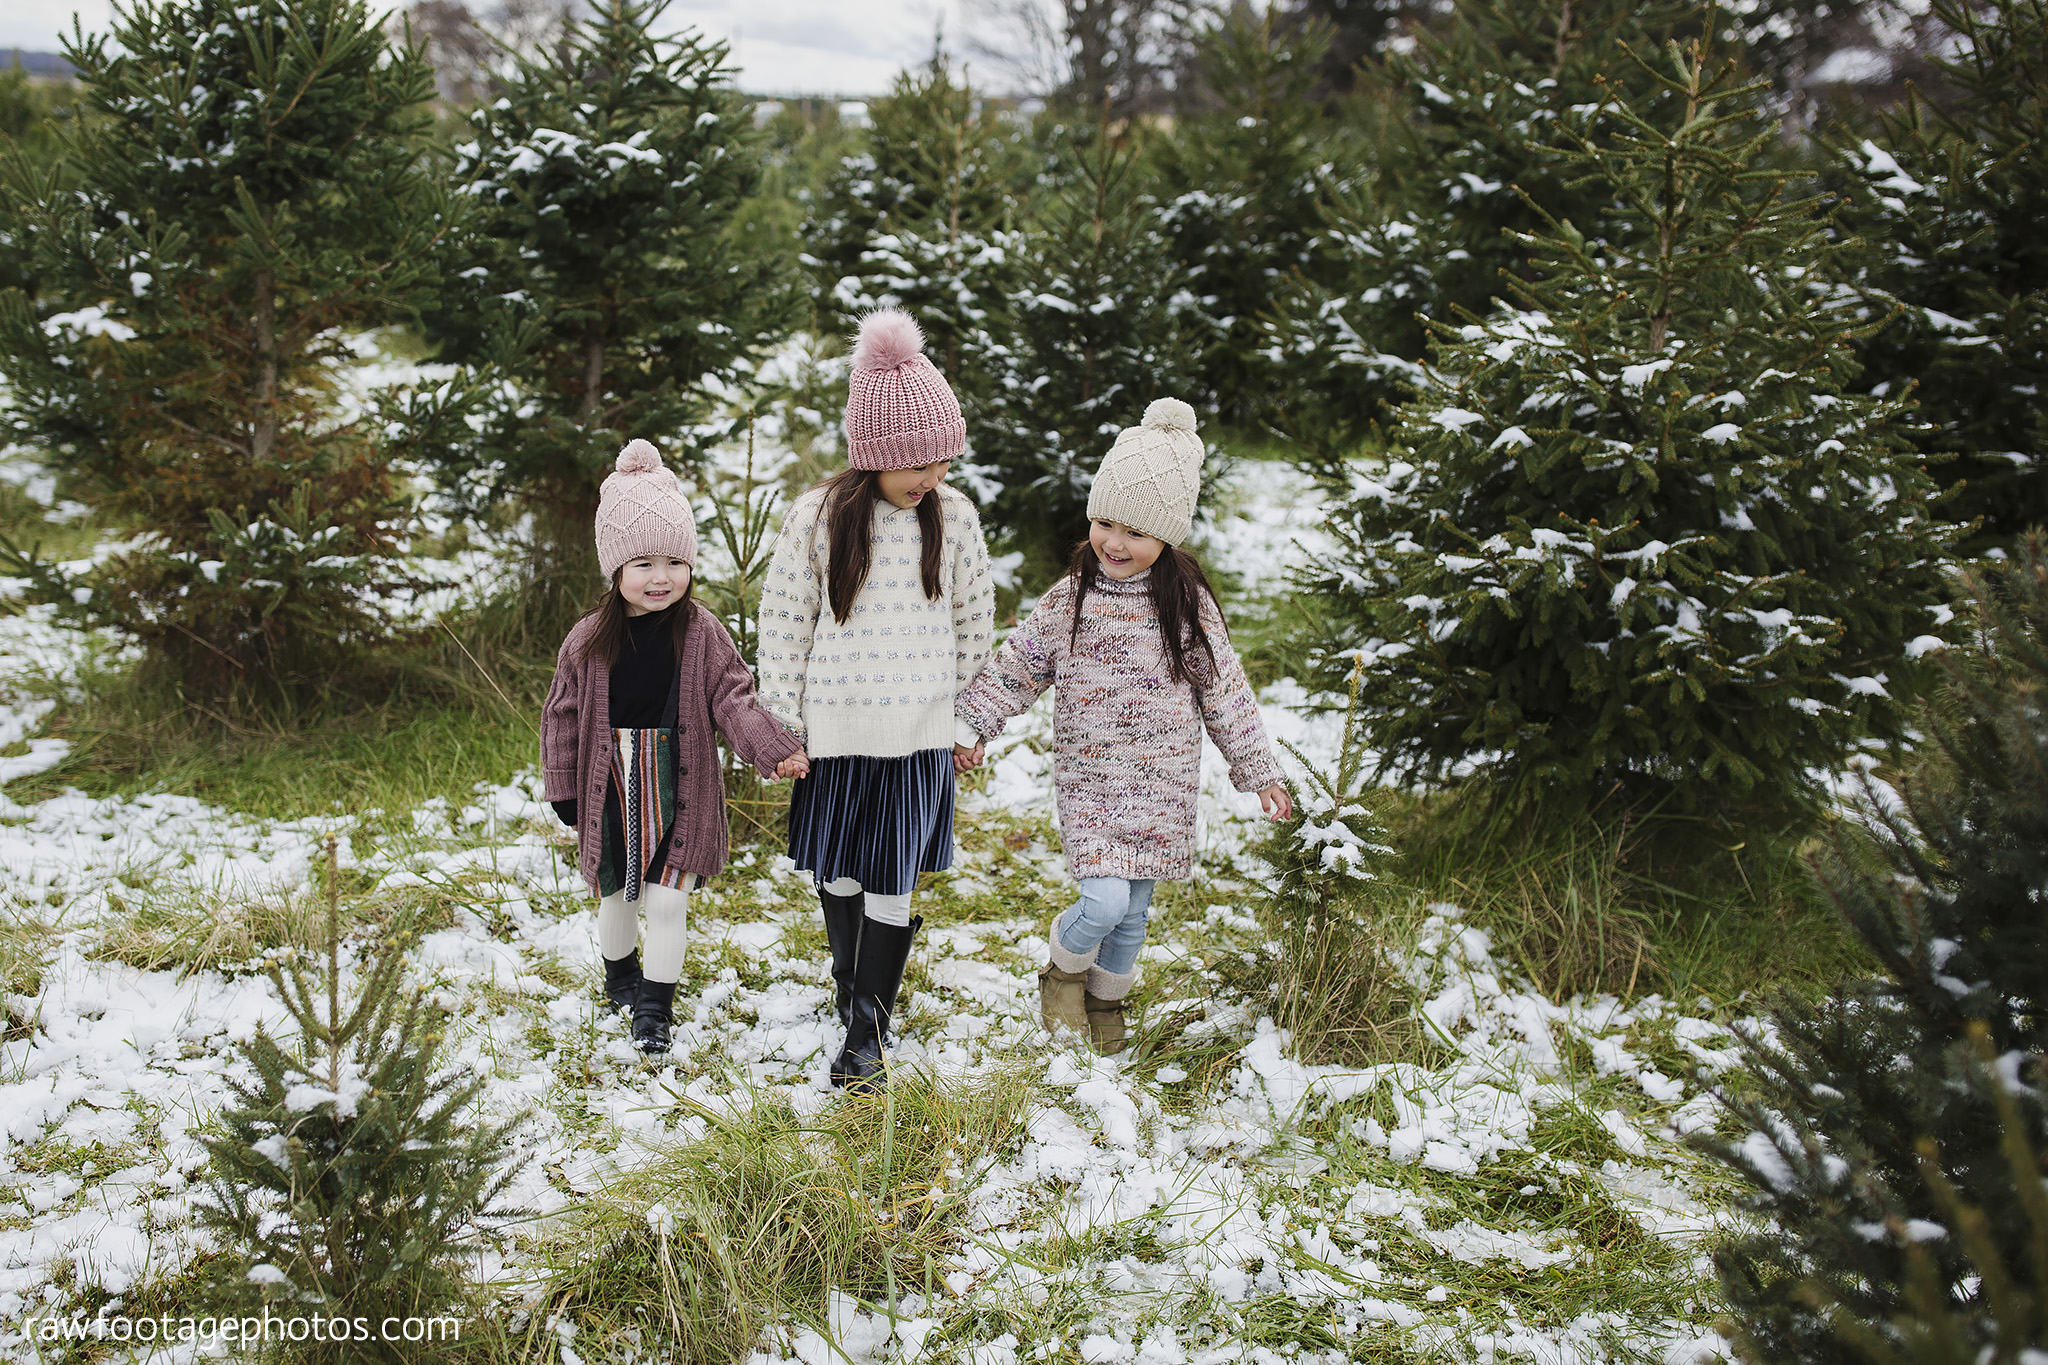 london_ontario_family_photographer-raw_footage_photography-tree_farm_minis-christmas_sessions-winter0004.jpg